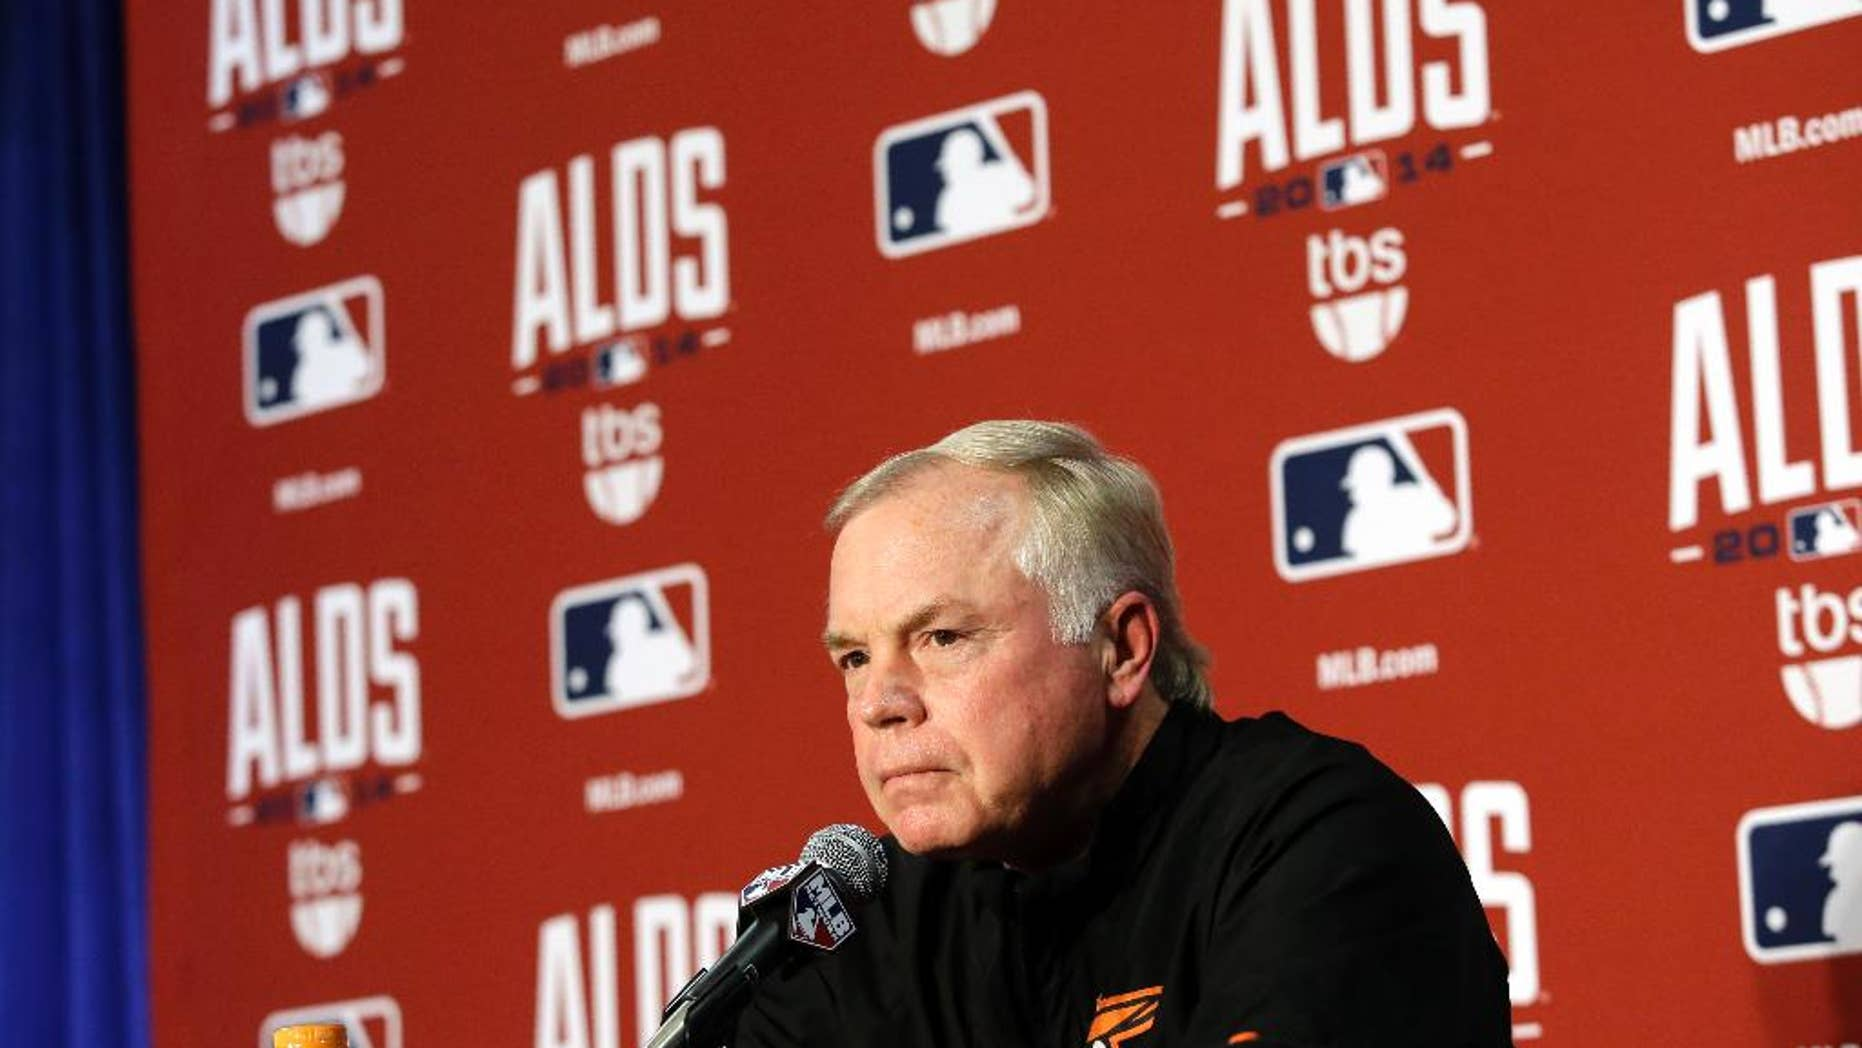 Baltimore Orioles manager Buck Showalter speaks at a news conference, Wednesday, Oct. 1, 2014, in Baltimore. The Orioles start the playoffs against the Detroit Tigers in Game 1 of the American League Division Series Thursday. (AP Photo/Patrick Semansky)